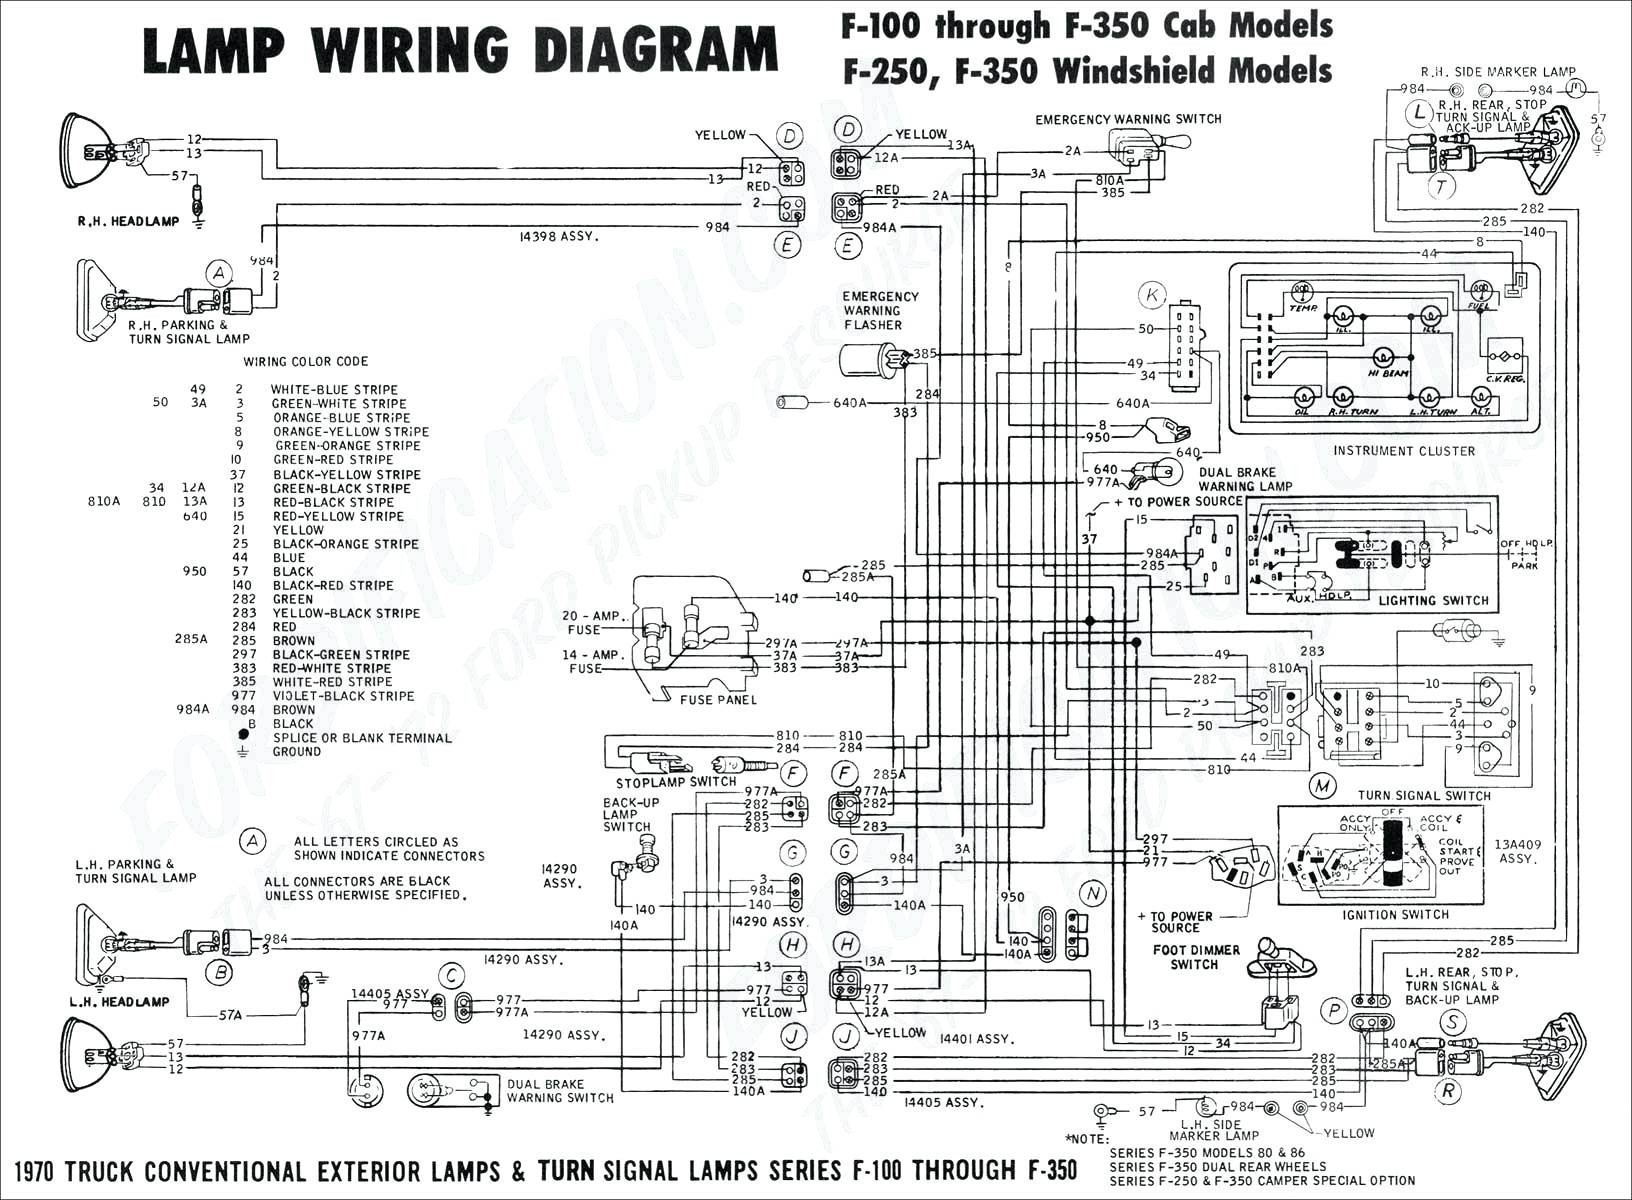 Cb750 Engine Diagram Auto Electrical Wiring 1986 Rx7 Harness Related With